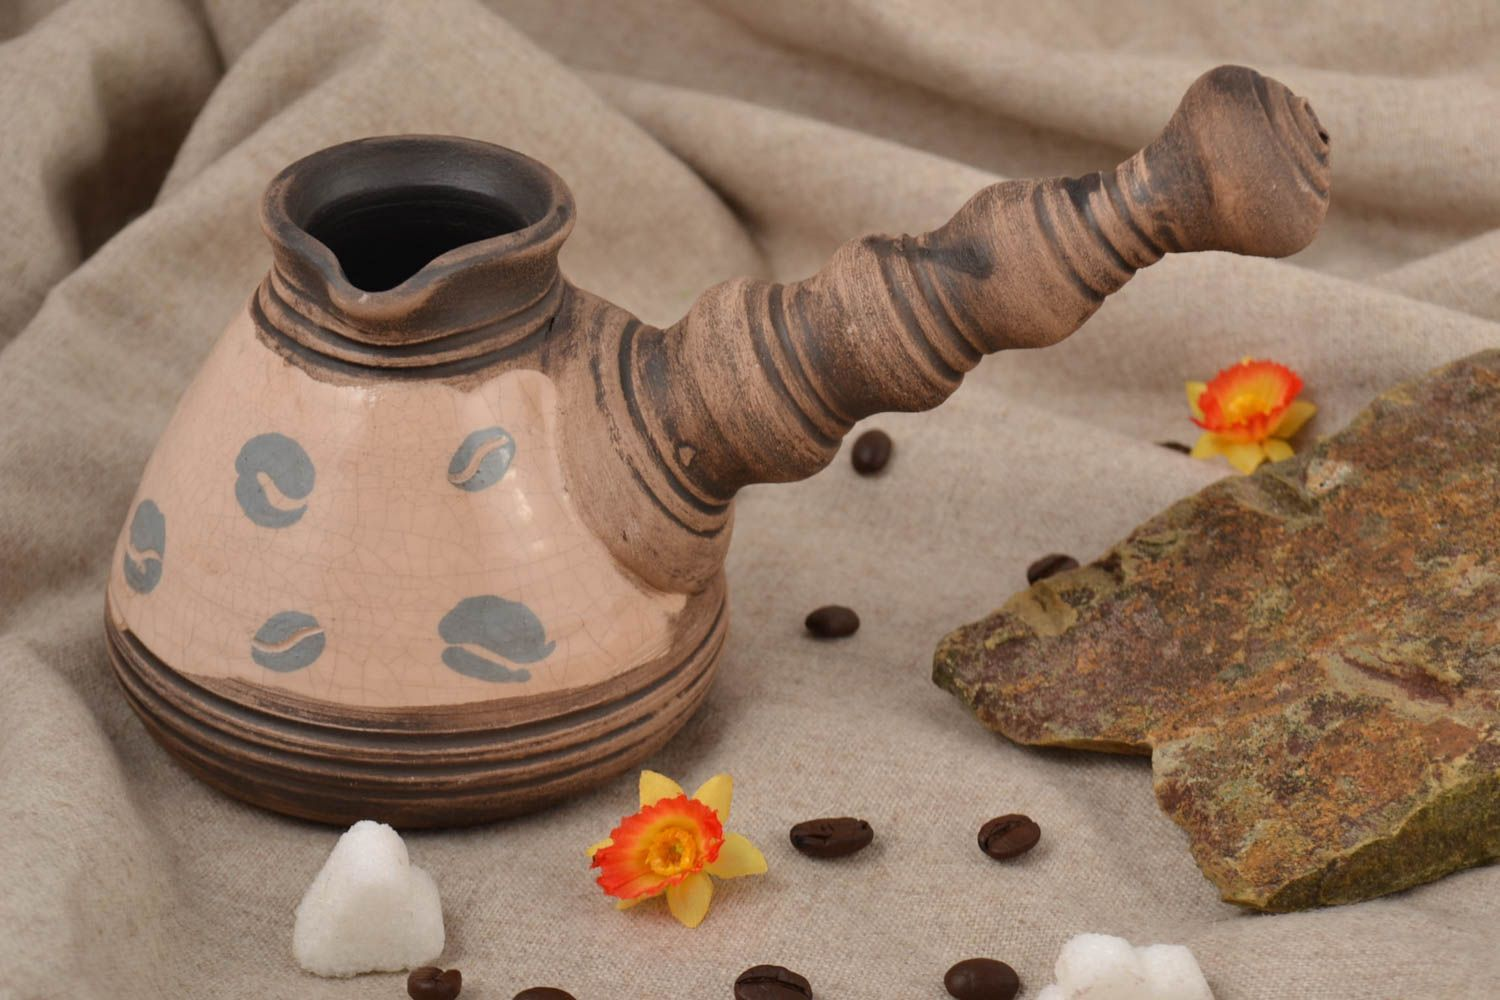 tea pots and coffee pots Kitchen utensils house utensils clay tableware all for coffee unusual tableware - MADEheart.com